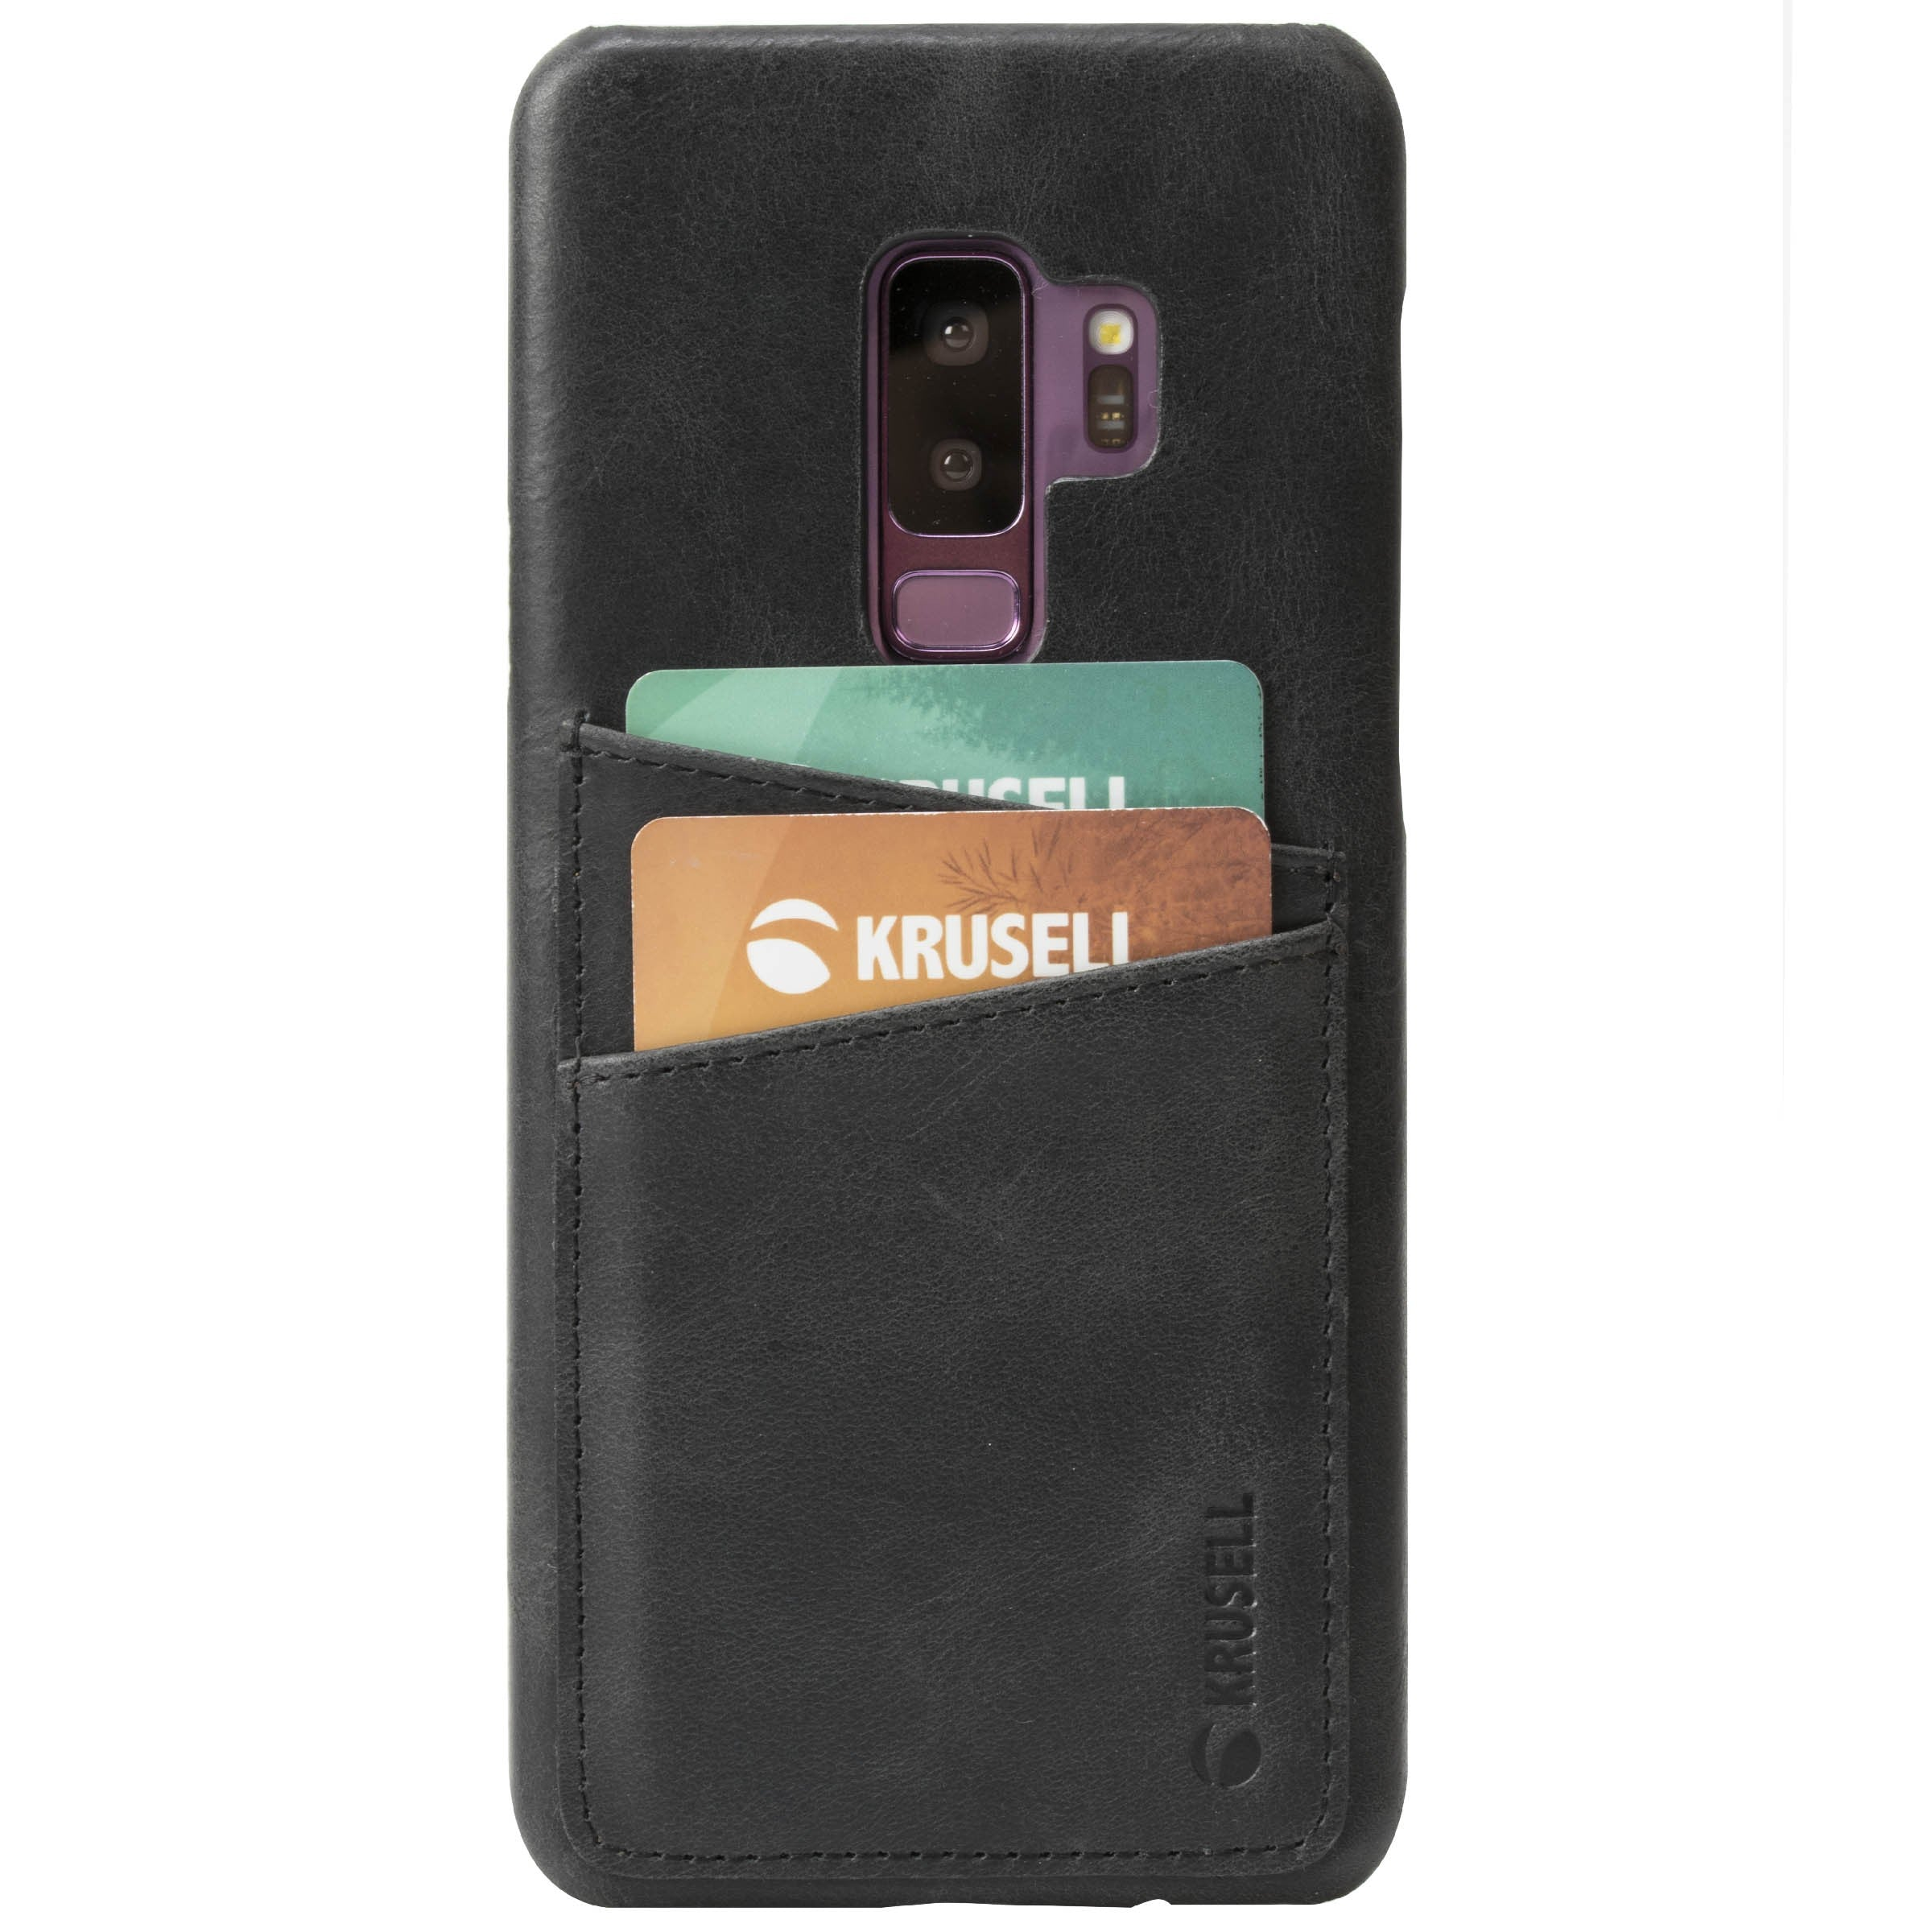 Samsung Galaxy S9 Plus, SUNNE 2 CARD COVER